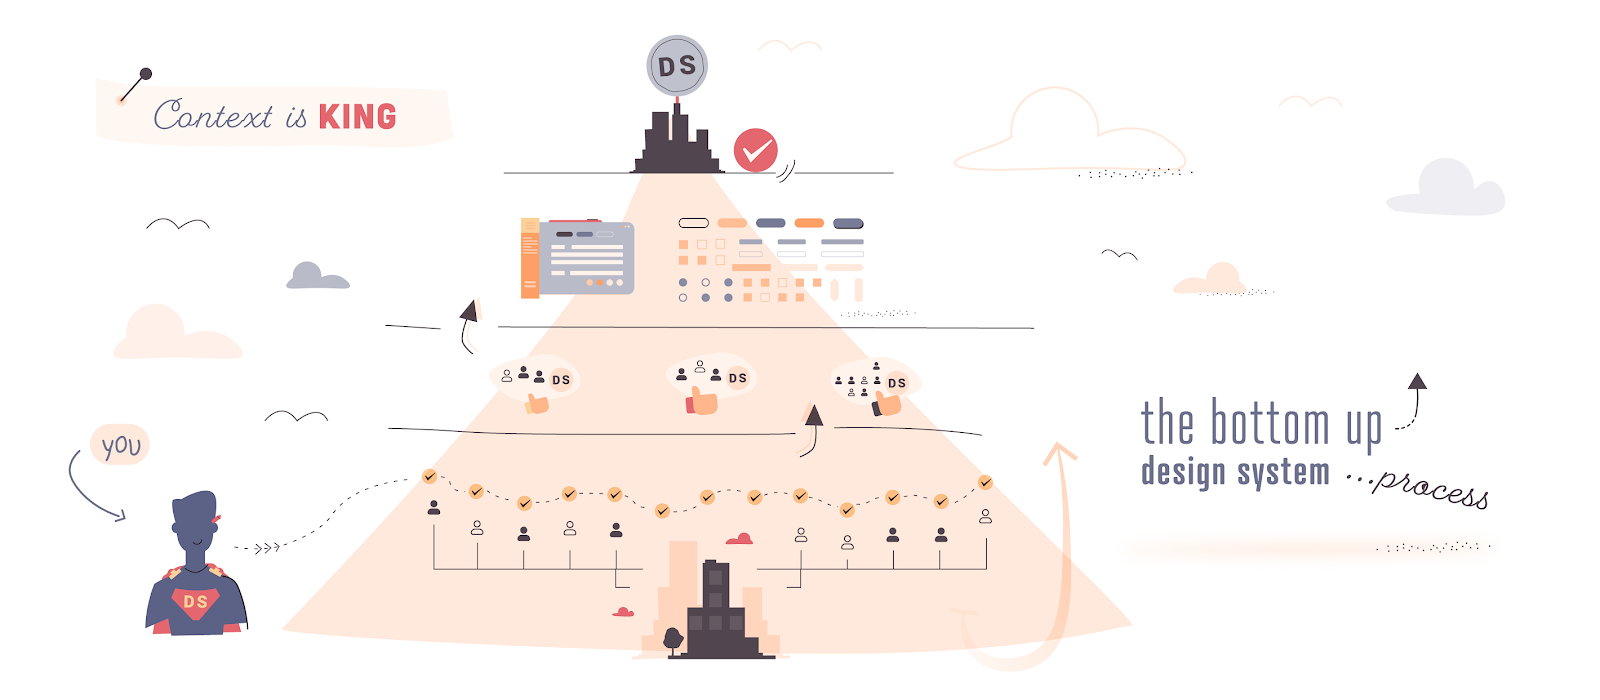 An infographic highlighting the Dutch government's bottom-up approach to design system buy-in and adoption.